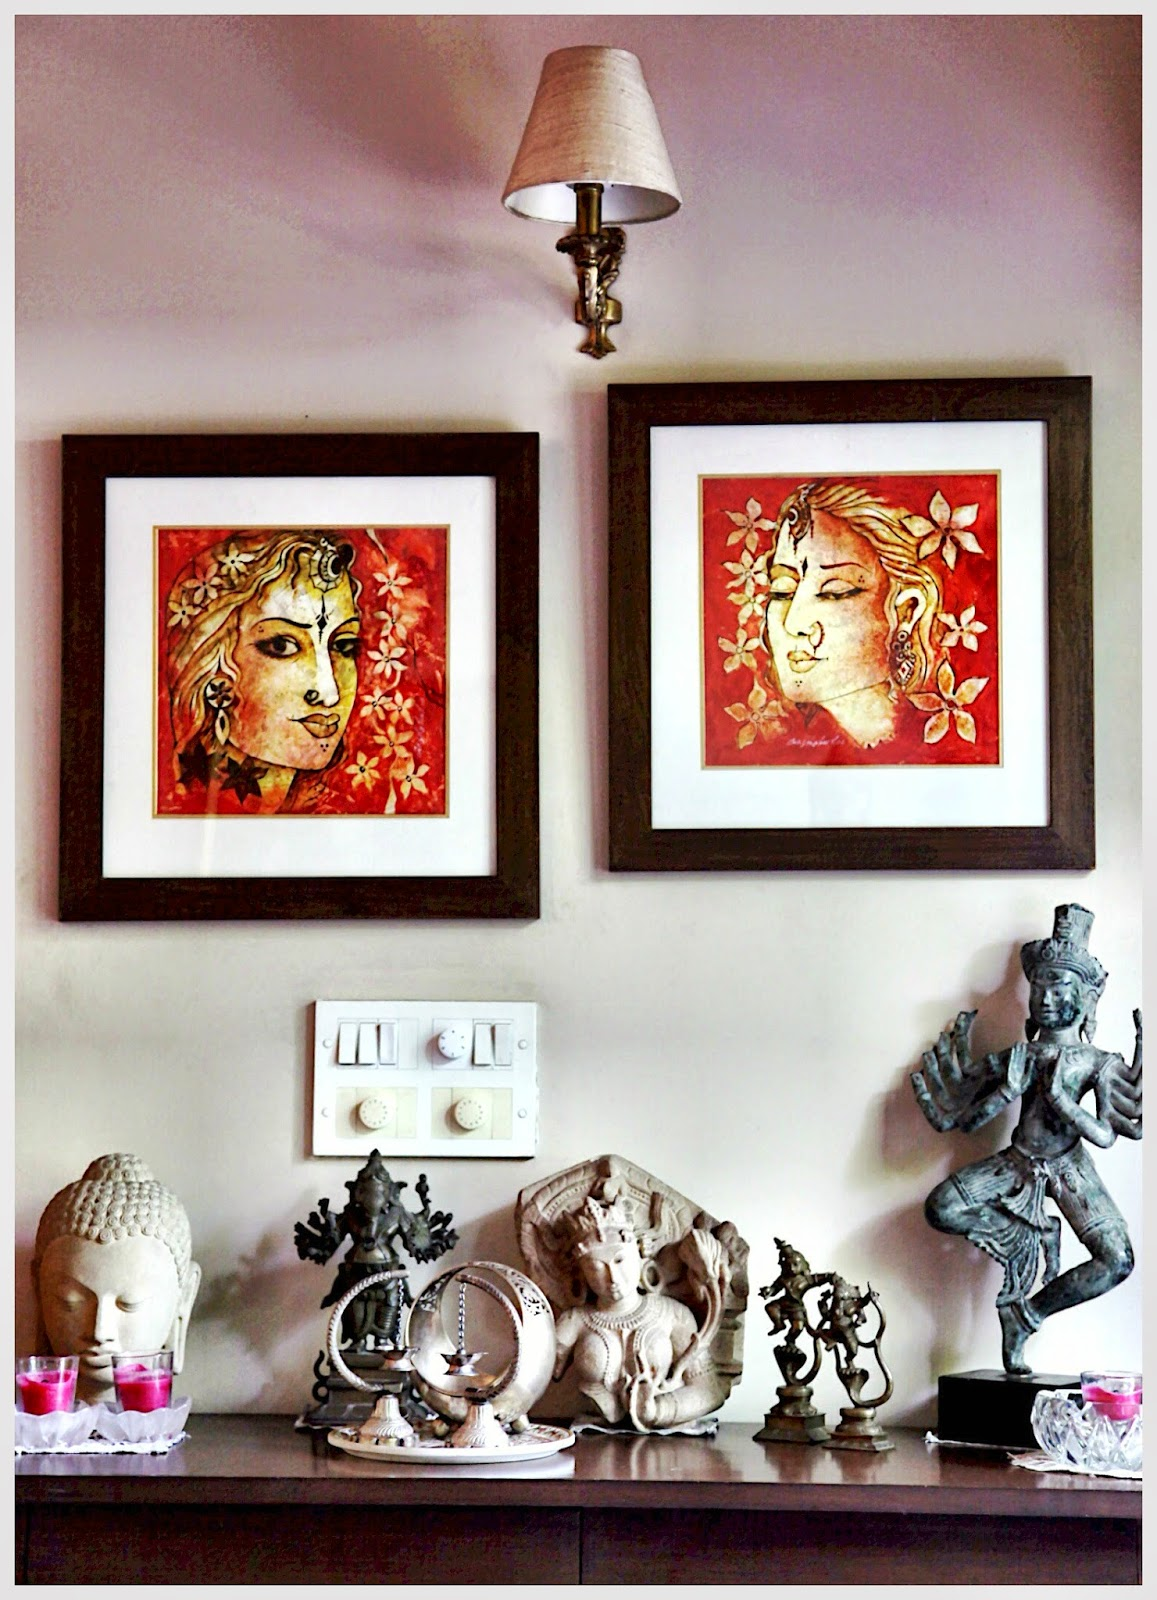 Grouping Balinese Sculptures With Traditional Indian Statues Creates An Eye Catching Display In This Corner Of The Living Room